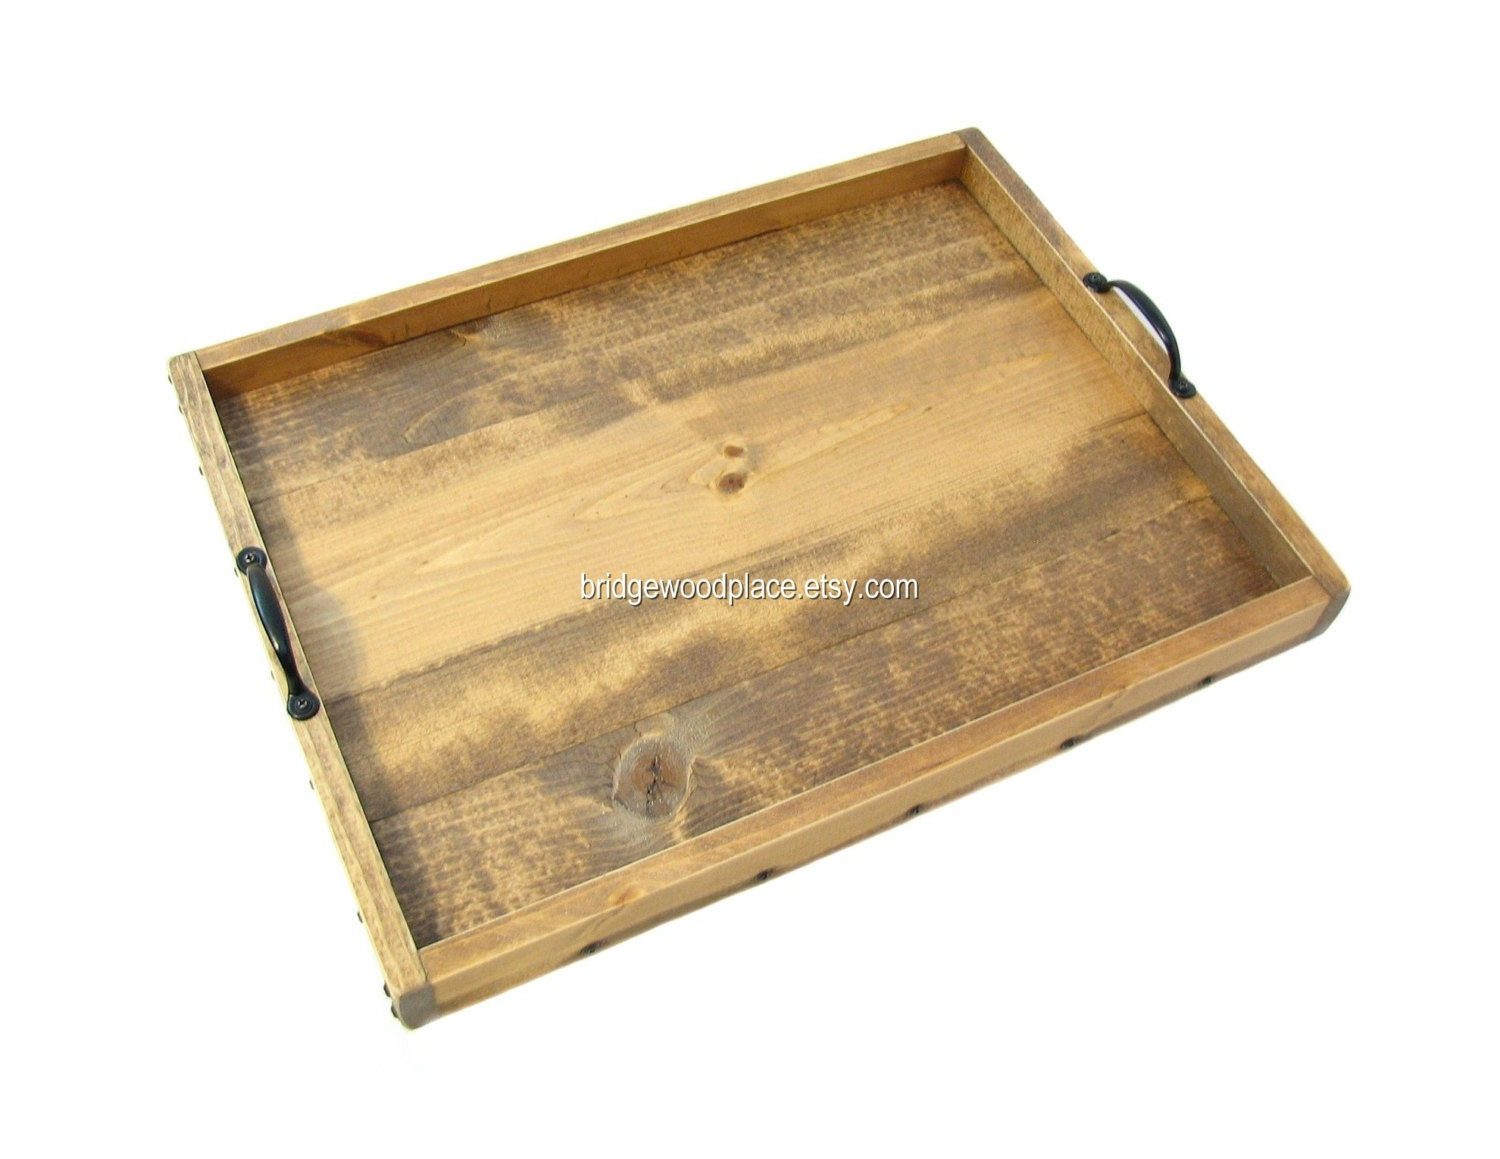 Ottoman tray large wooden coffee table tray by bridgewoodplace Ottoman coffee table trays